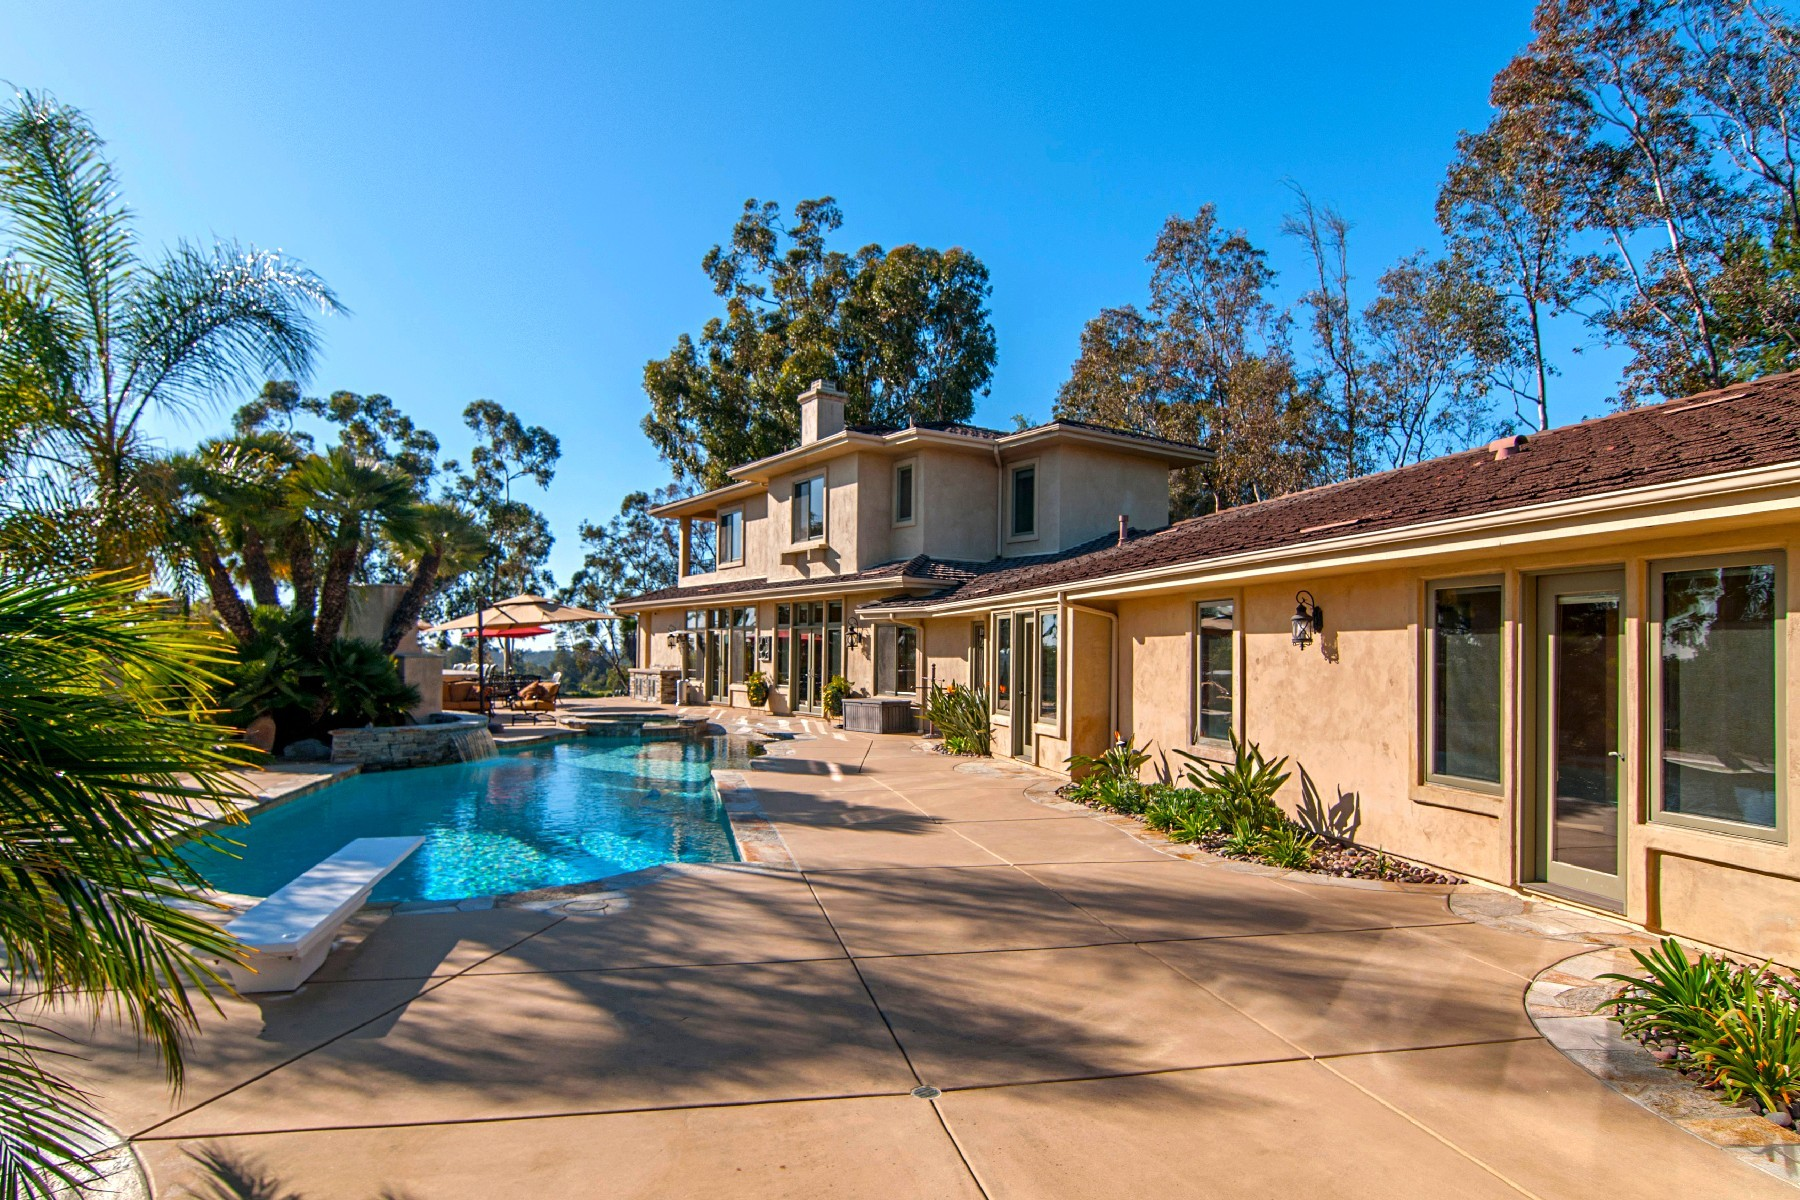 Additional photo for property listing at 17146 El Mirador 17146  El Mirador Rancho Santa Fe, California 92067 Estados Unidos